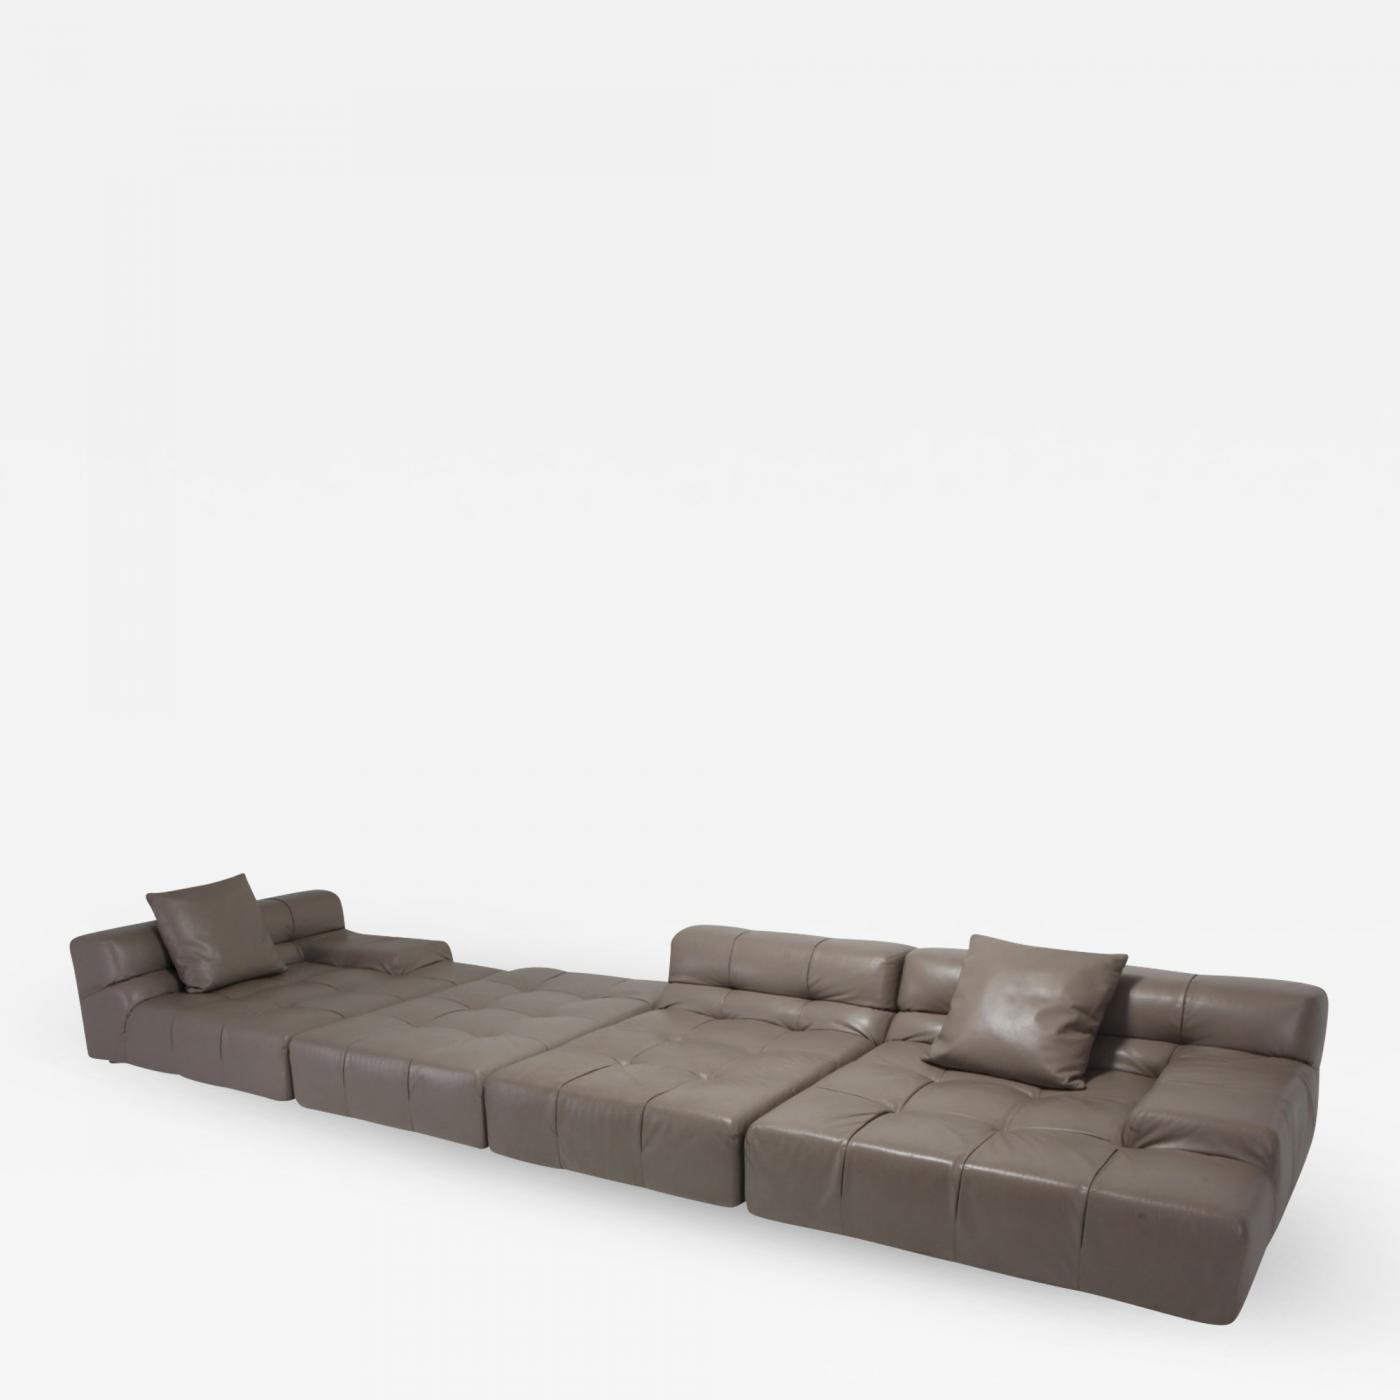 Peachy Tufty Time Bb Italia Taupe Leather Sectional Sofa By Patricia Short Links Chair Design For Home Short Linksinfo